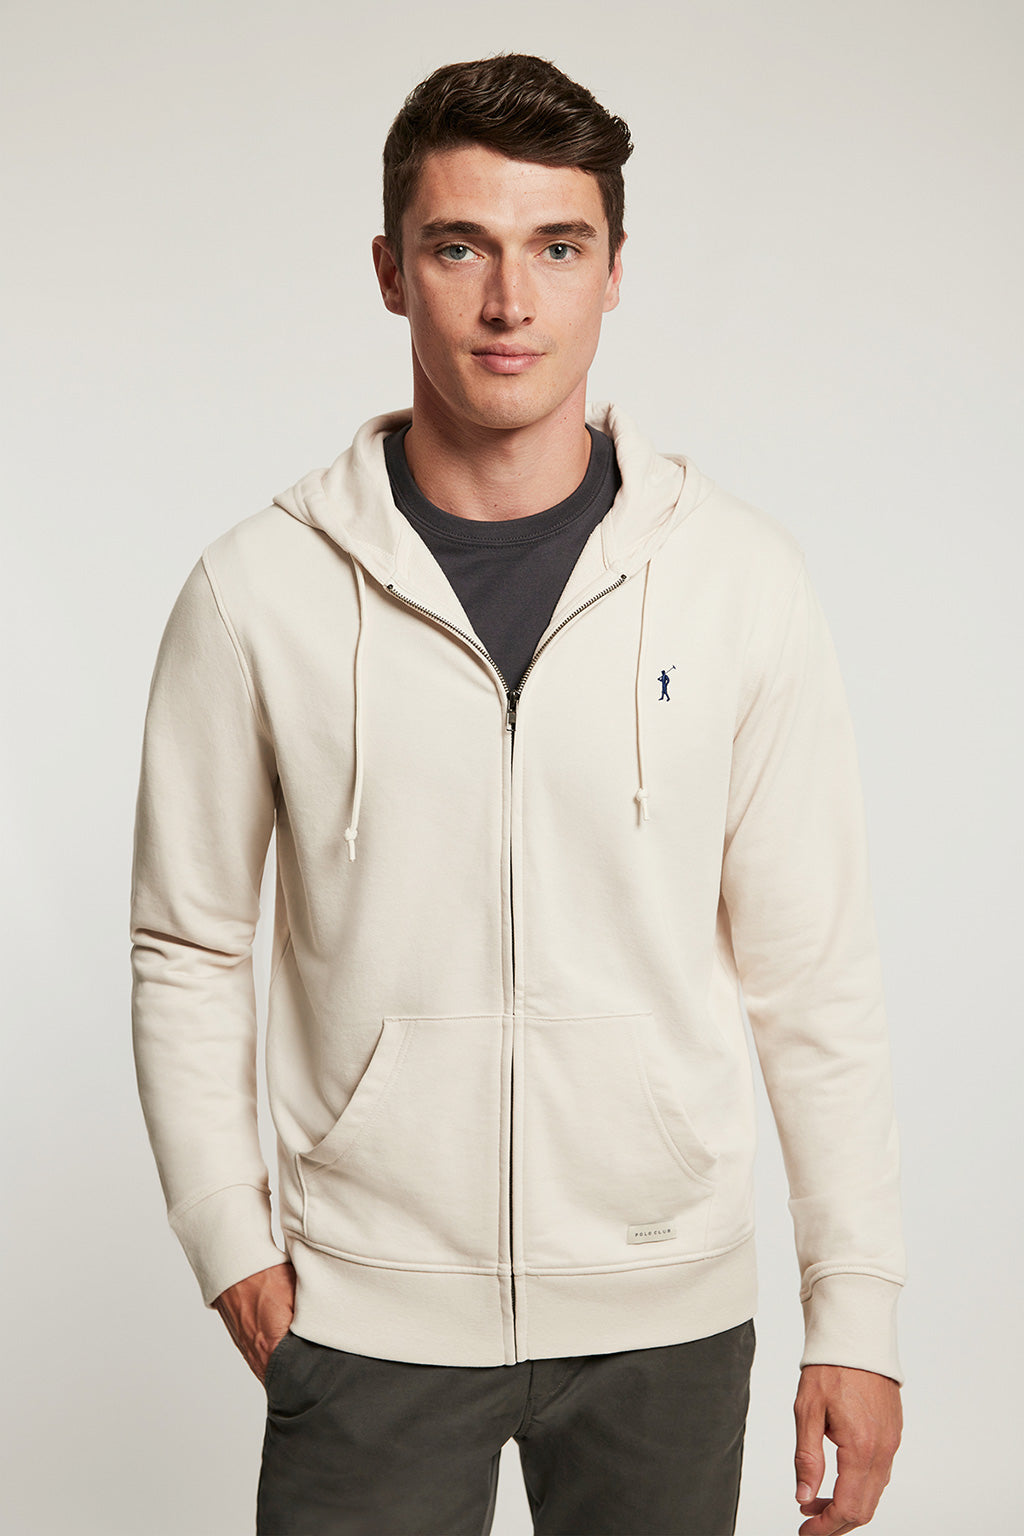 Nude organic sweatshirt with zip closure and contrast embroidery